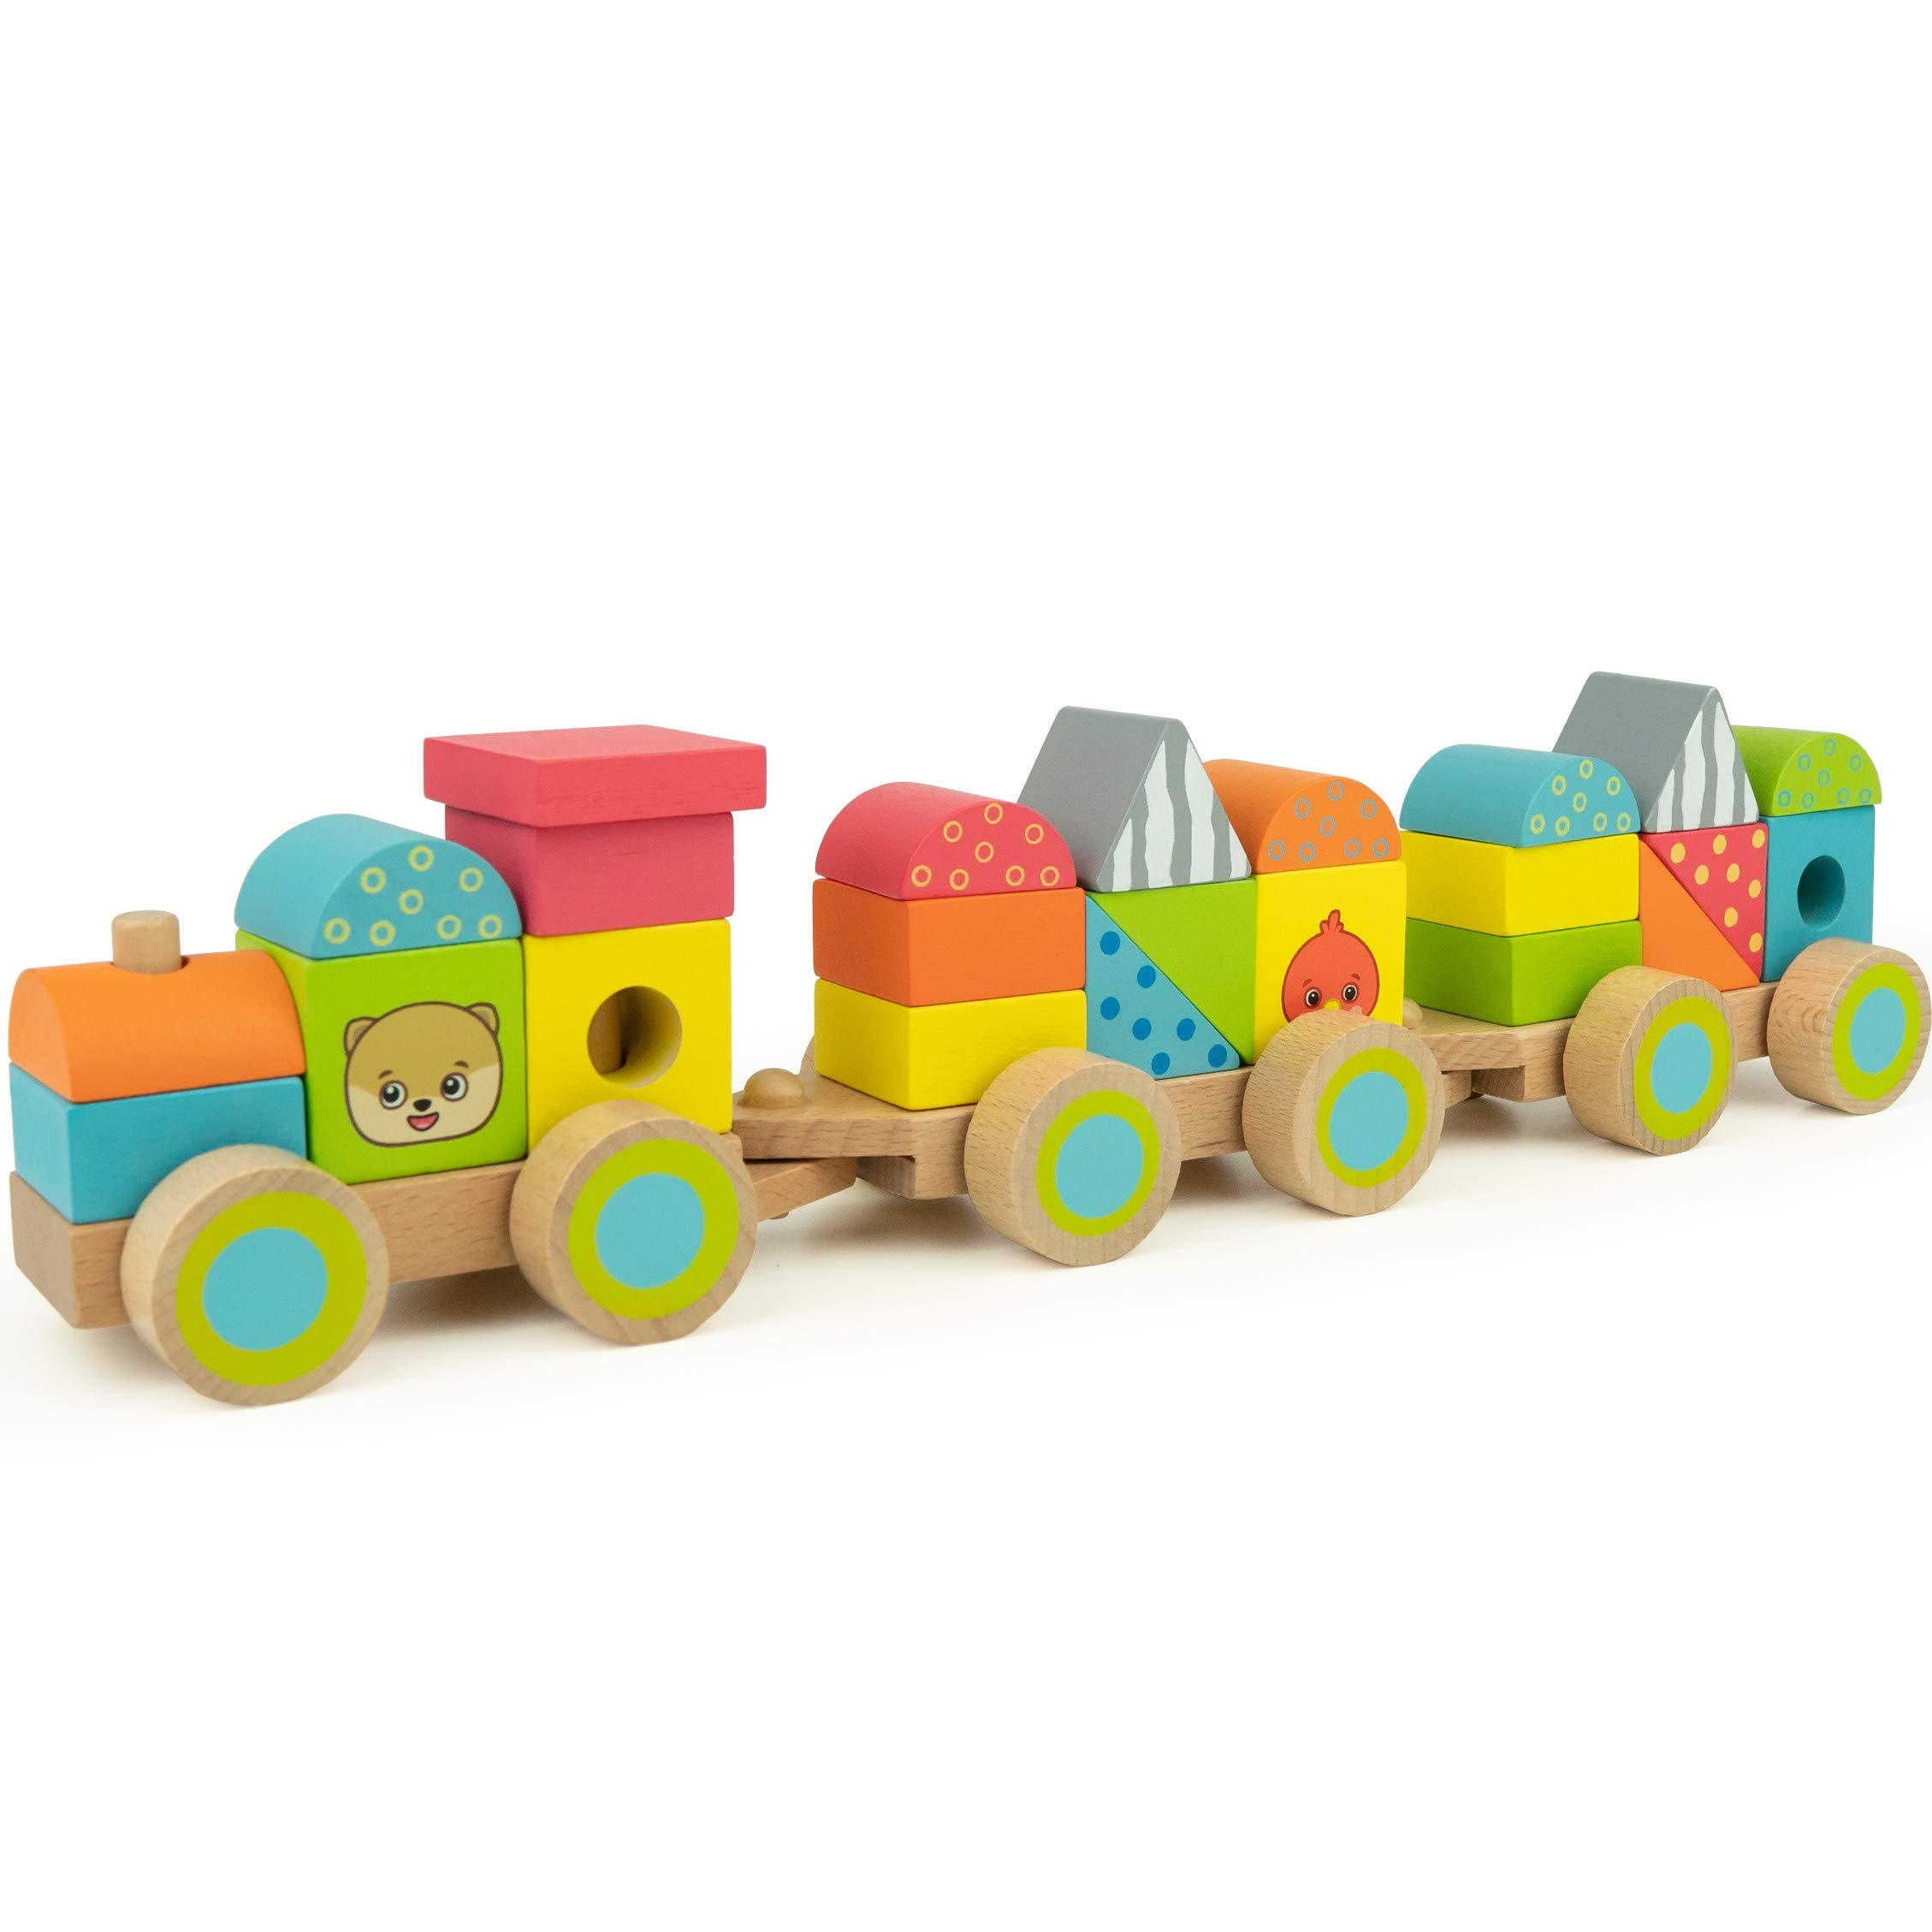 Jamohom Wooden Digital Train with Numbers 0-9 Magnetic Railway Set Educational Toys for Kids